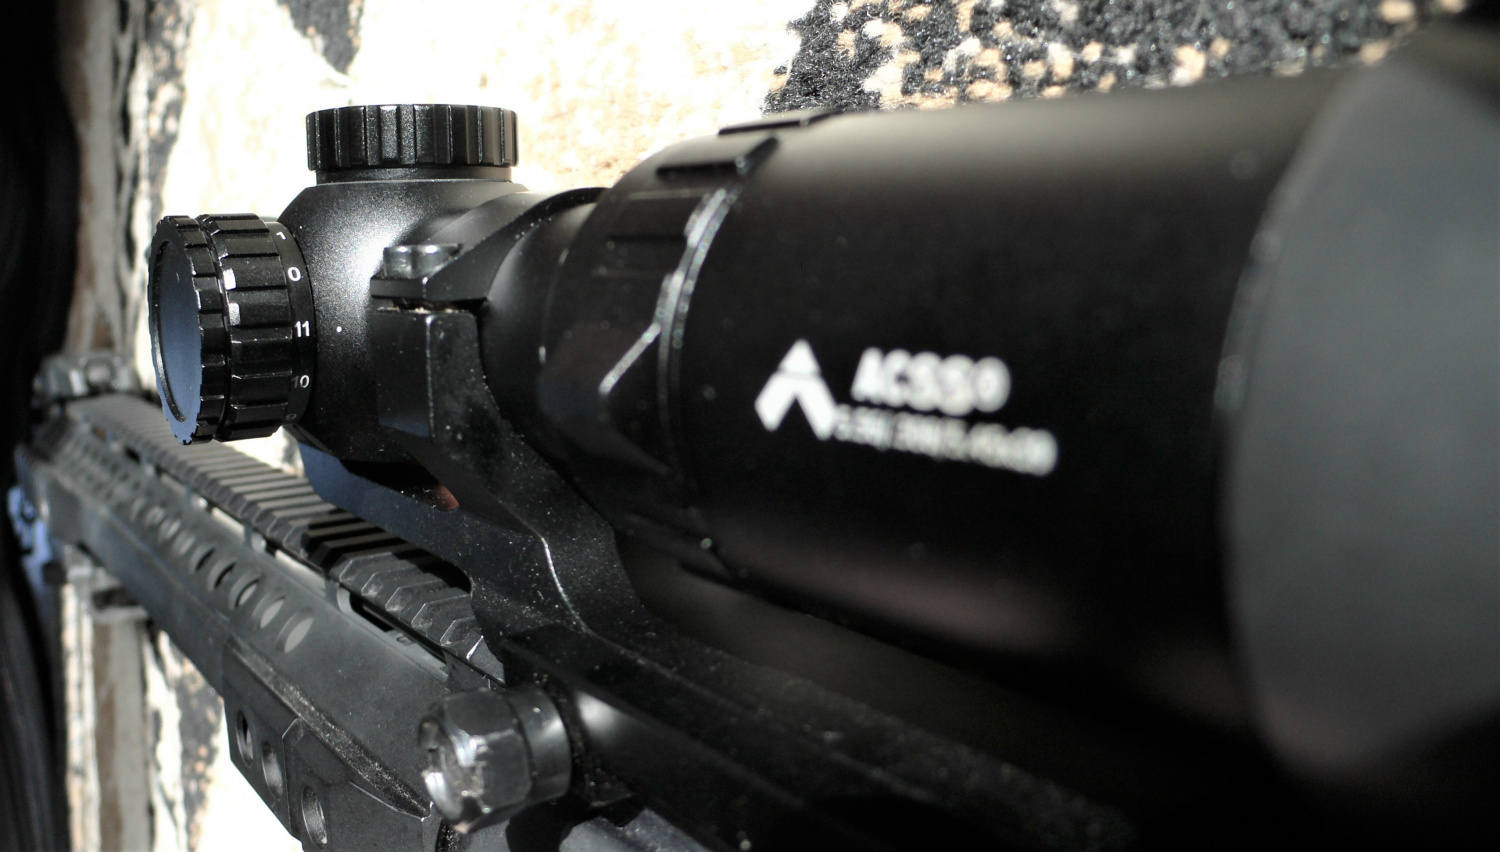 Primary Arms 1-8x scope review